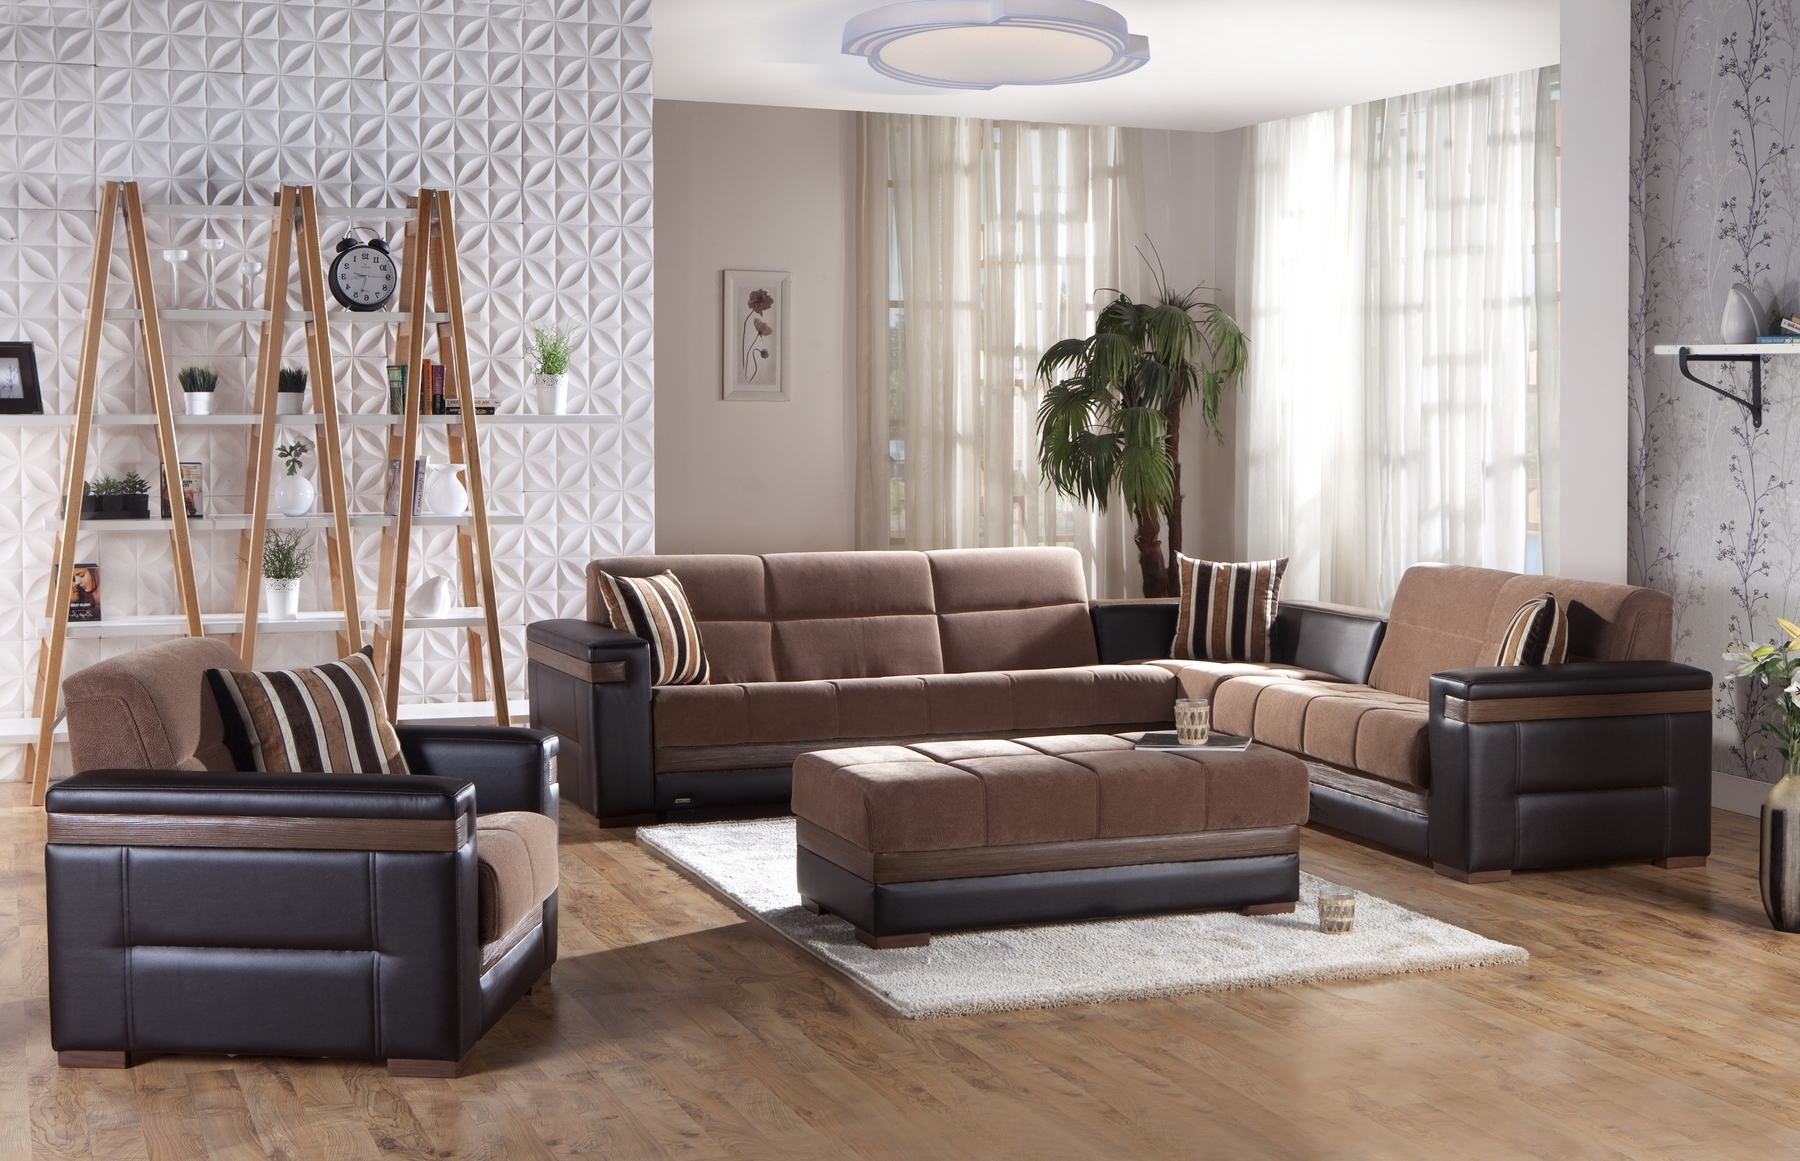 Moon Troy Brown Sectional Sofa Moon Sunset Furniture Sectional Within 2018 Convertible Sectional Sofas (View 19 of 20)